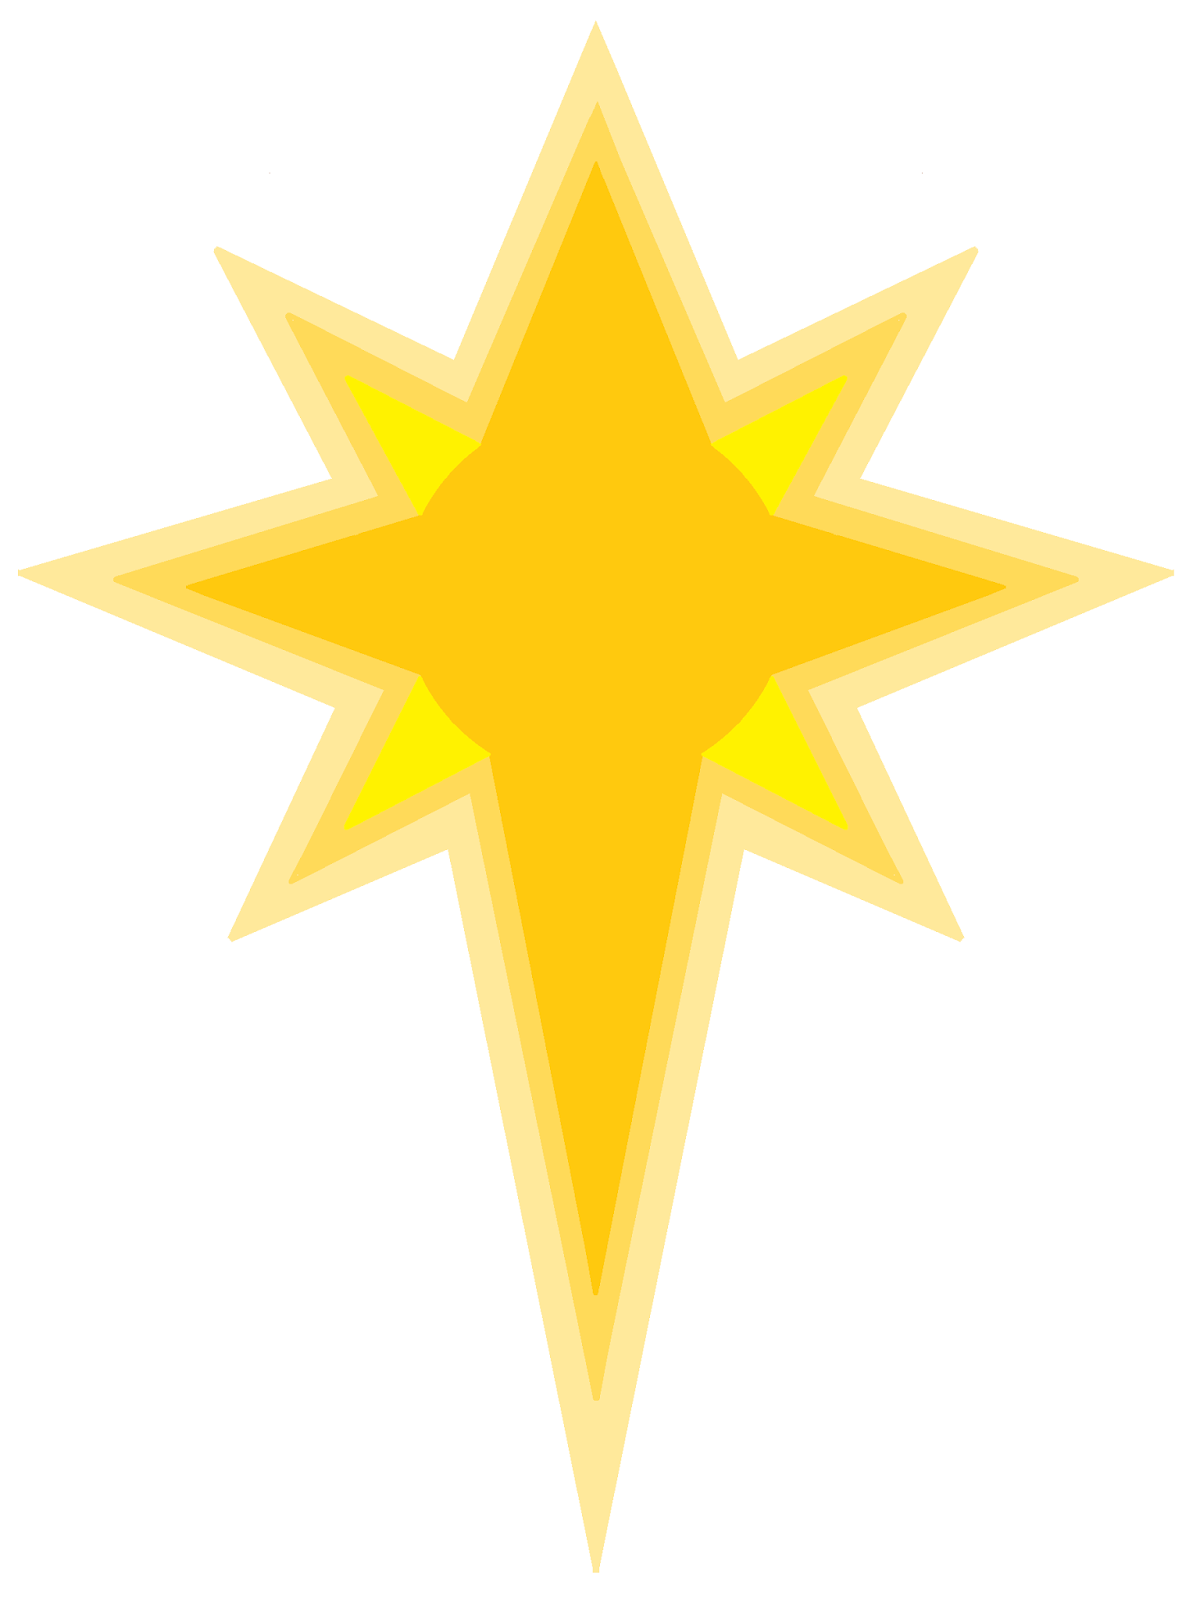 star of bethlehem clipart.